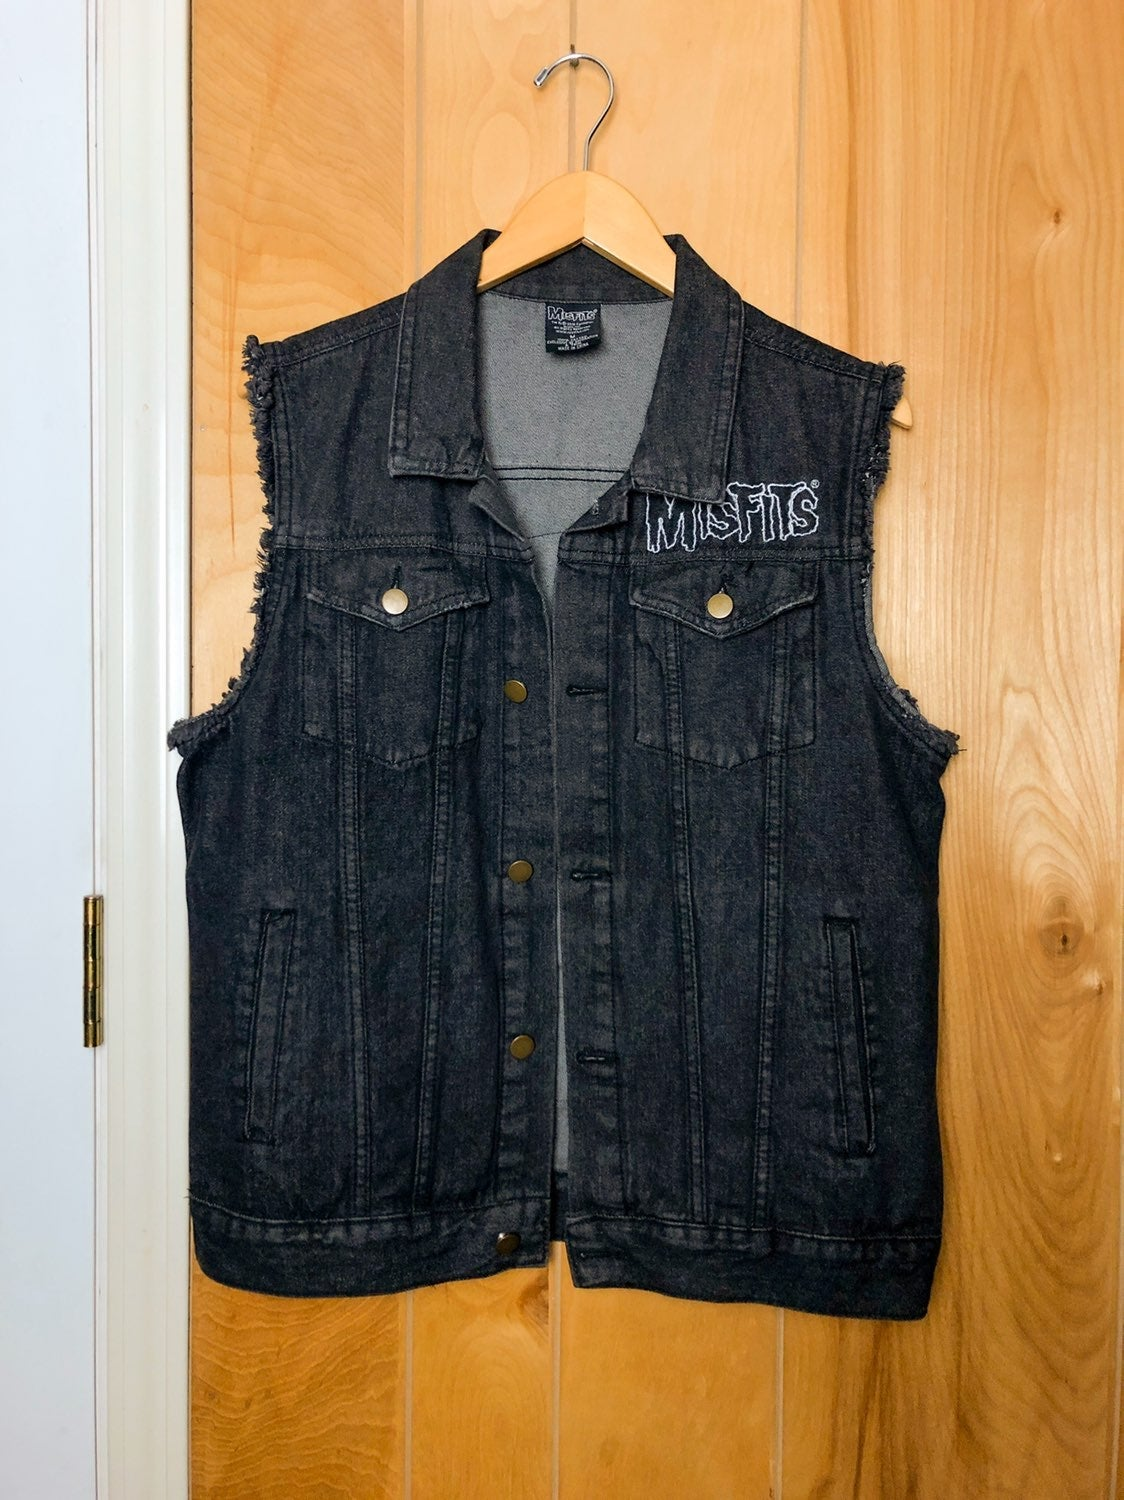 Misfits Fiend Club Denim Jacket Vest